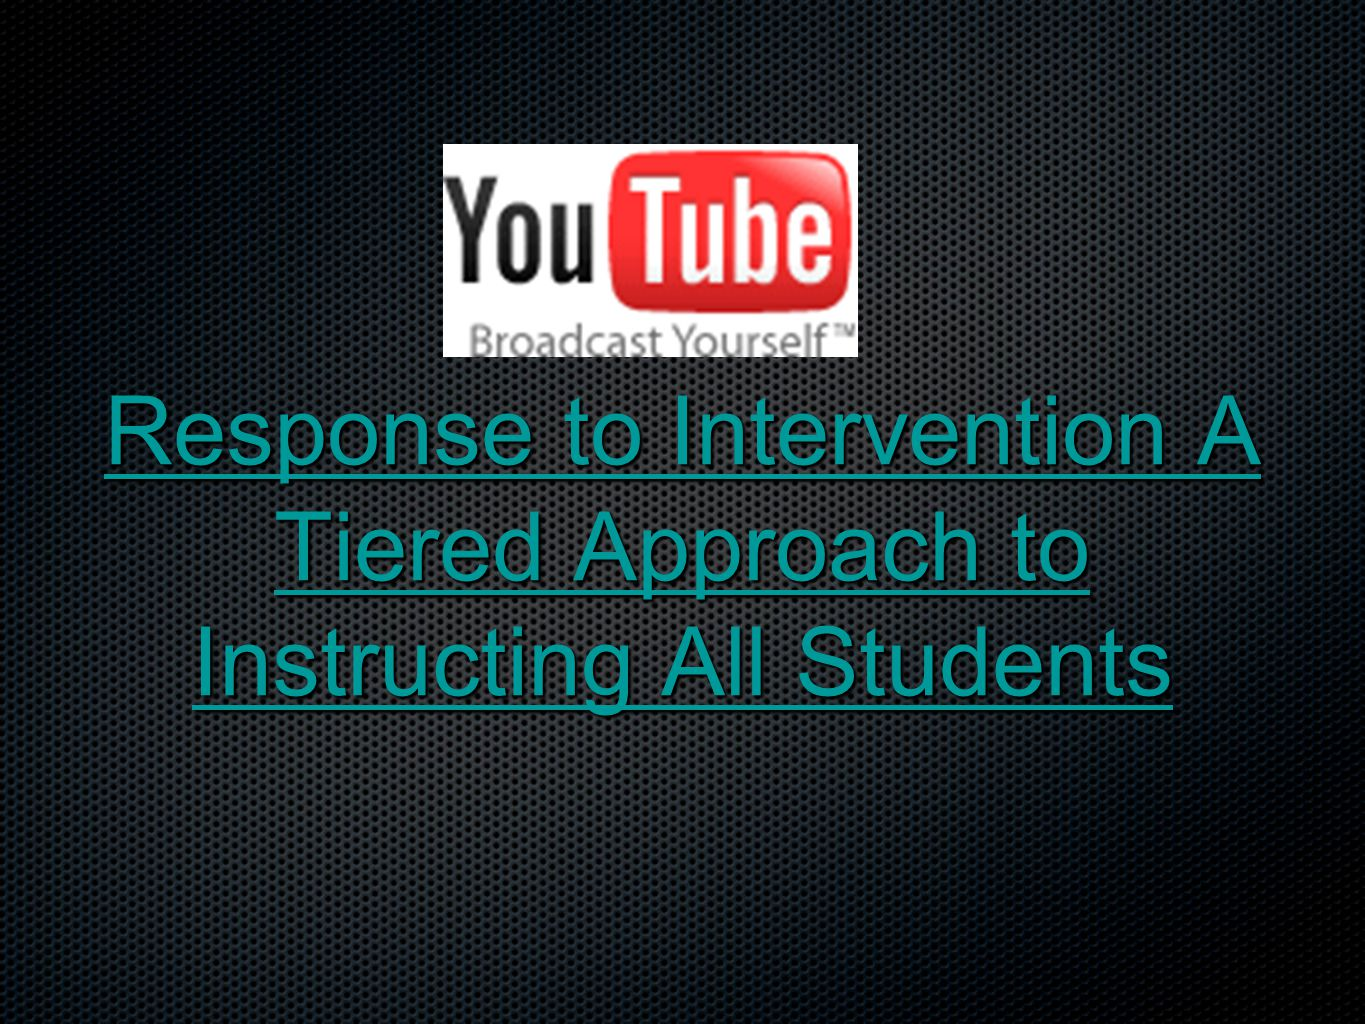 RTI Guiding Principles All students are part of ONE proactive educational system All students are part of ONE proactive educational system Use scientific, research-based instruction and interventions Use scientific, research-based instruction and interventions Data are used to guide instructional decisions Data are used to guide instructional decisions Use instructionally relevant assessments that are reliable and valid Use instructionally relevant assessments that are reliable and valid (Screening, Diagnostic, Progress Monitoring)